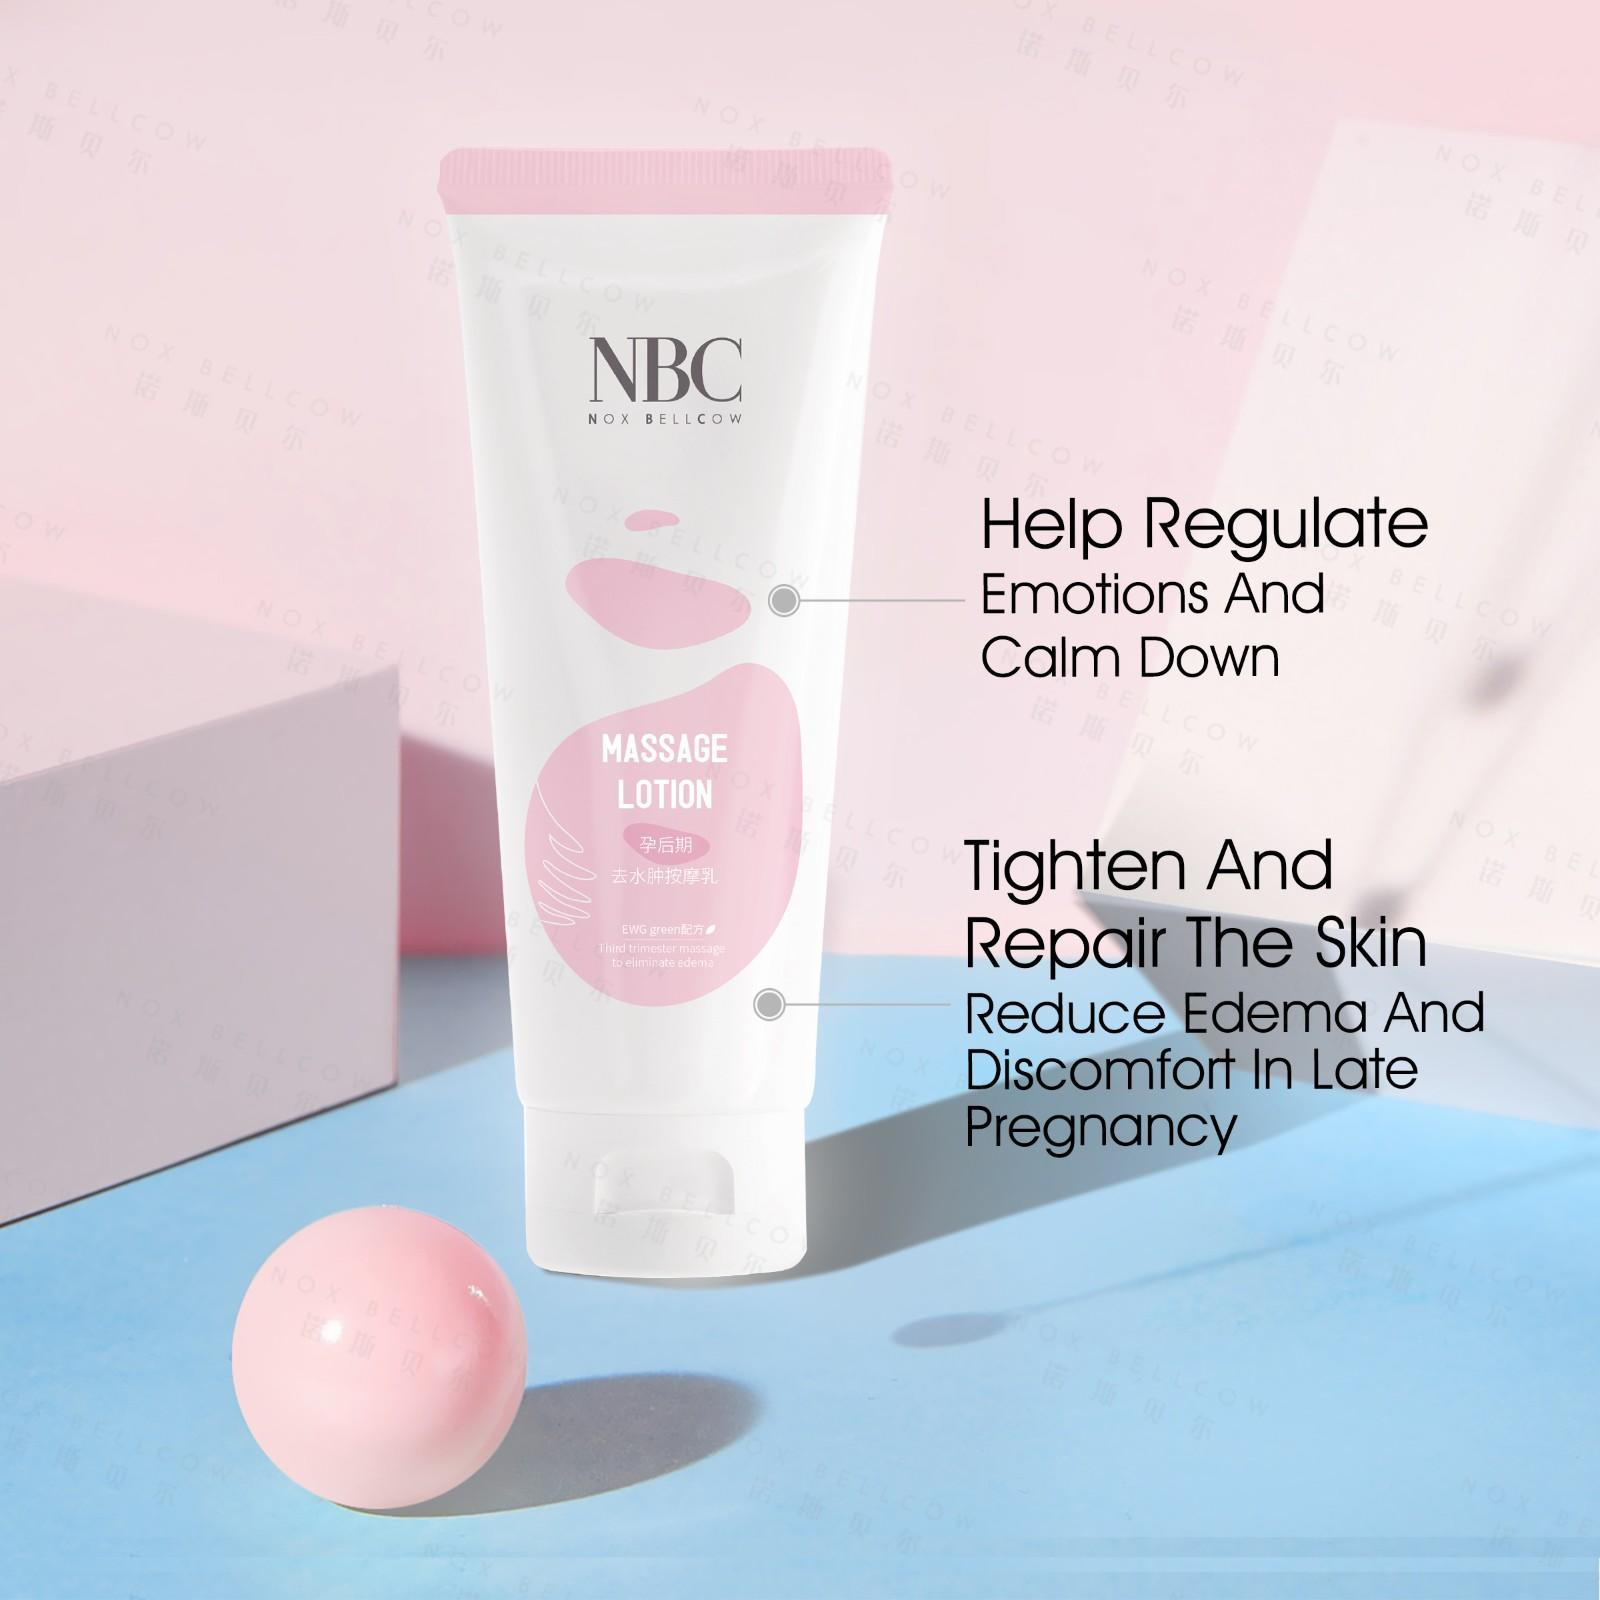 NOX BELLCOW Pregnancy products company for skincare-1